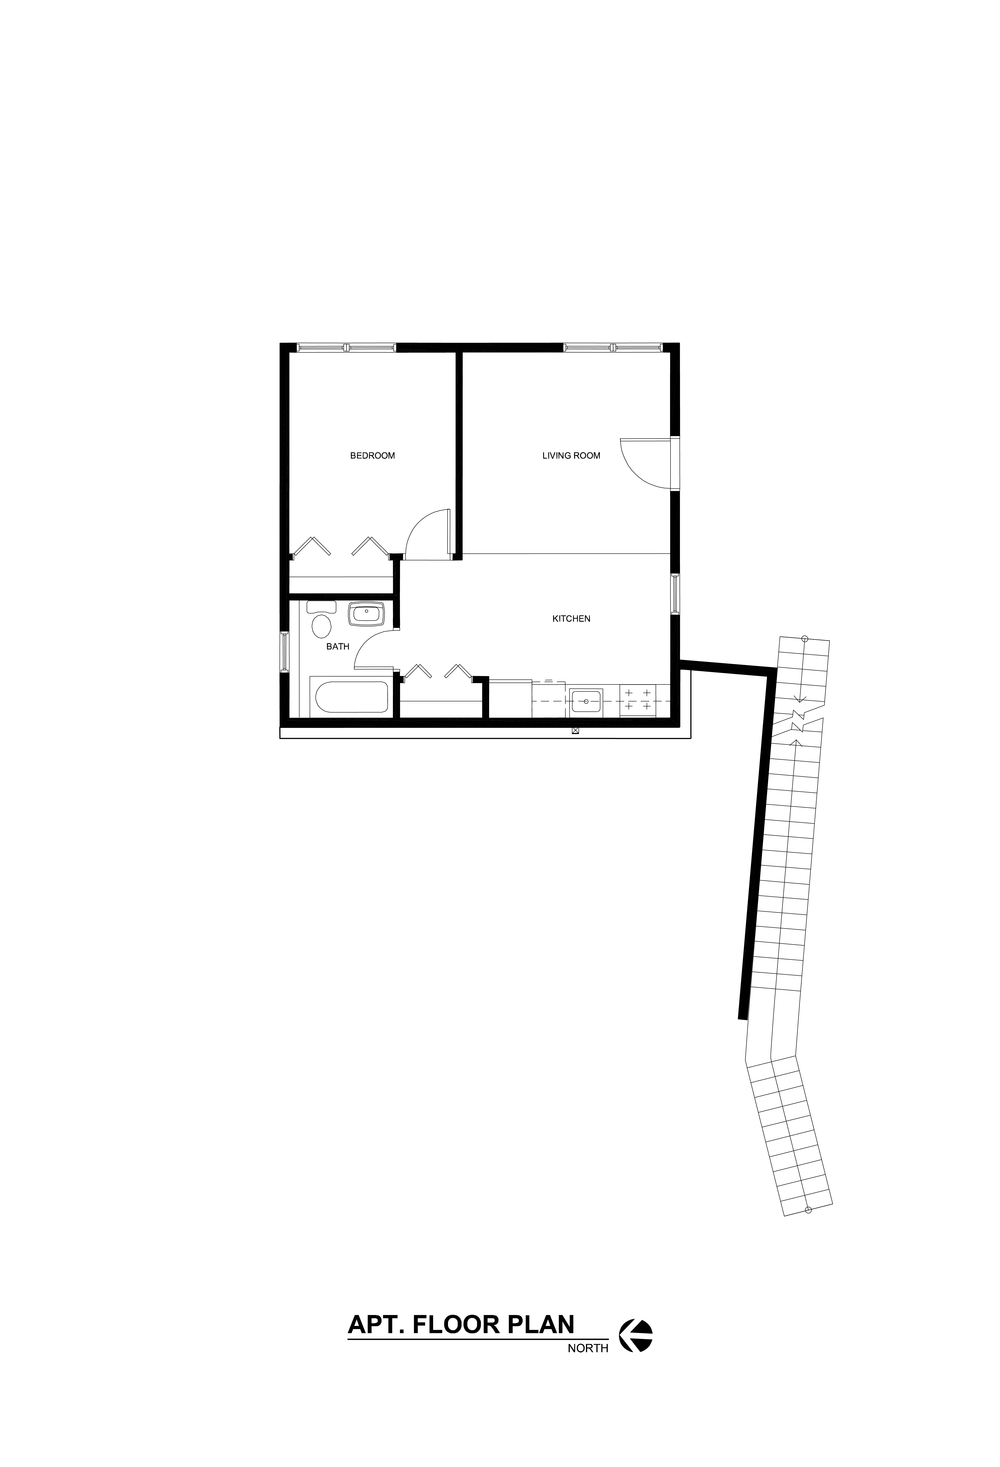 SP1.1 APART. FLOOR PLAN H5-01.png